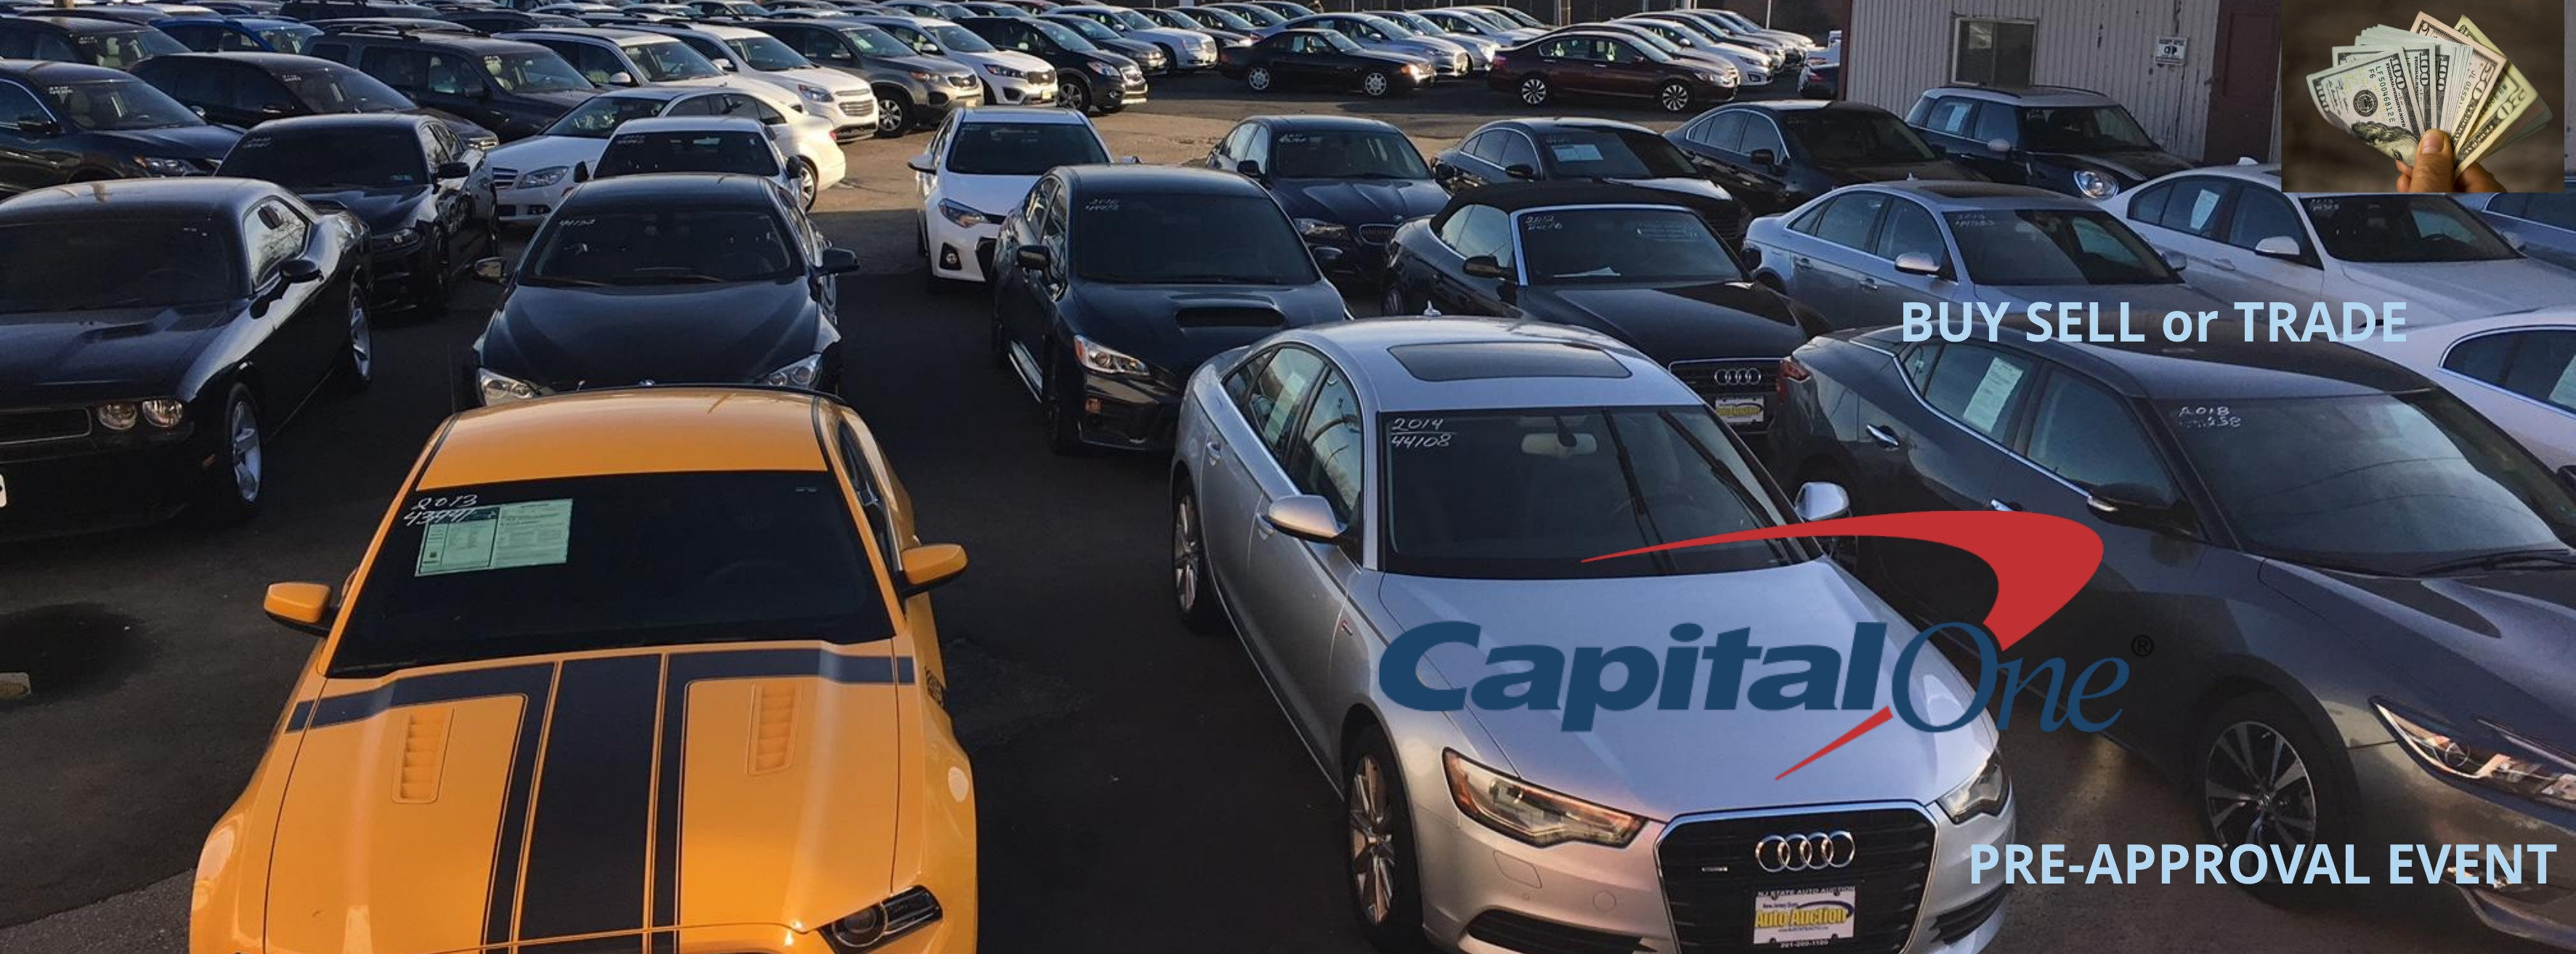 NJStateAuto Used Car Auction Dealer